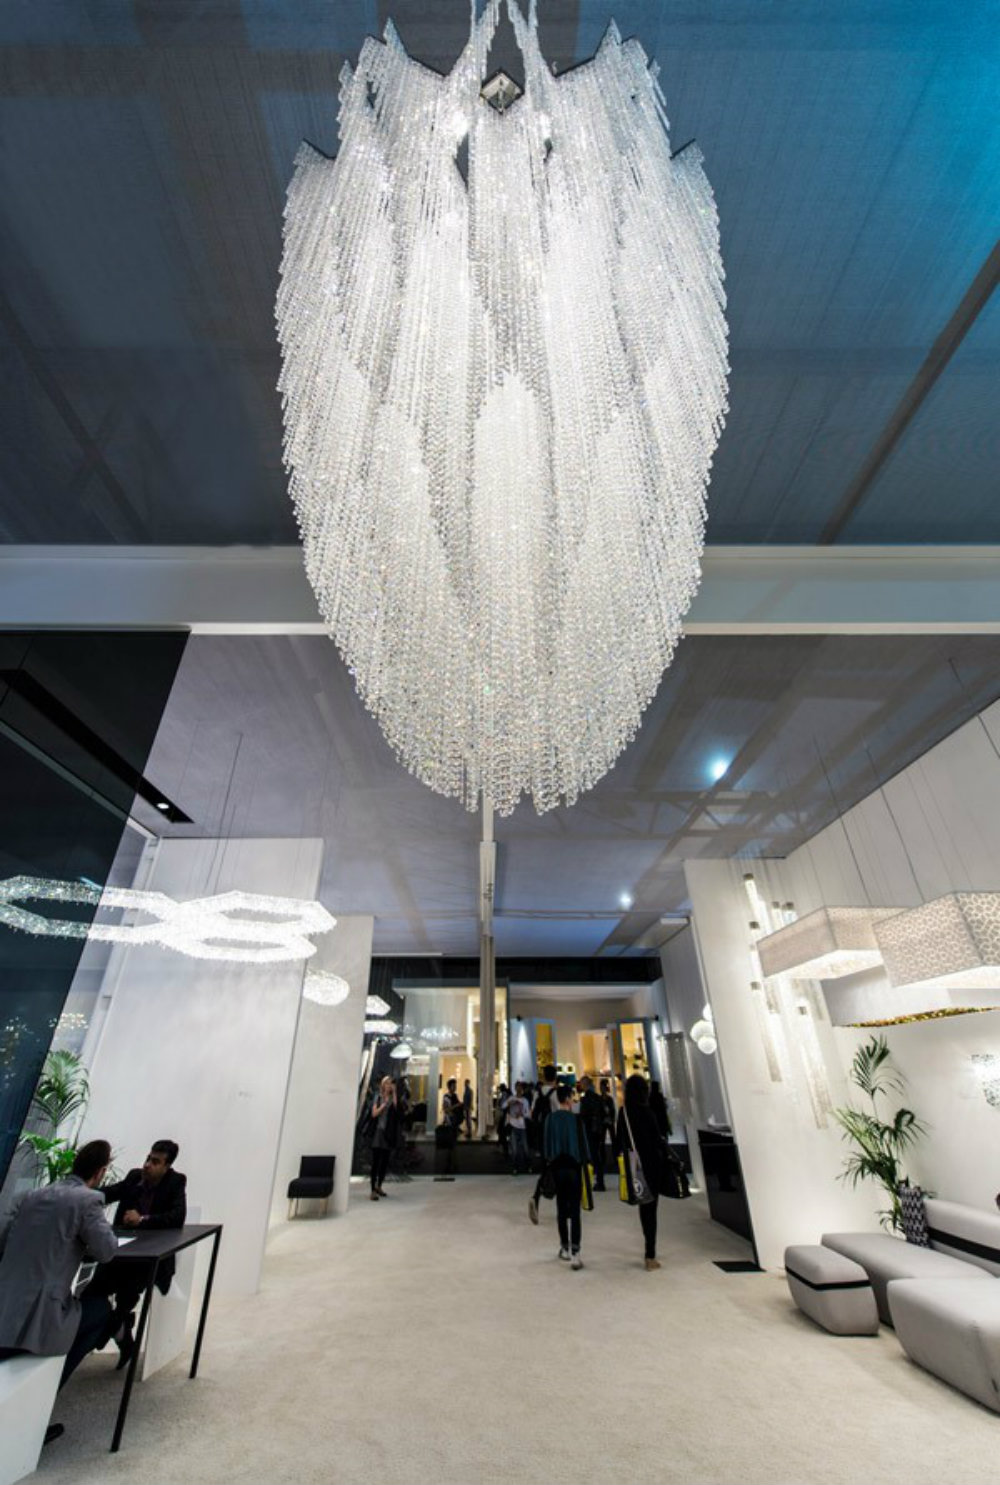 The Best Lighting Exhibitors To See At Euroluce 2019 euroluce 2019 The Best Lighting Exhibitors To See At Euroluce 2019 The Best Lighting Exhibitors To See At EuroLuce 2019 2